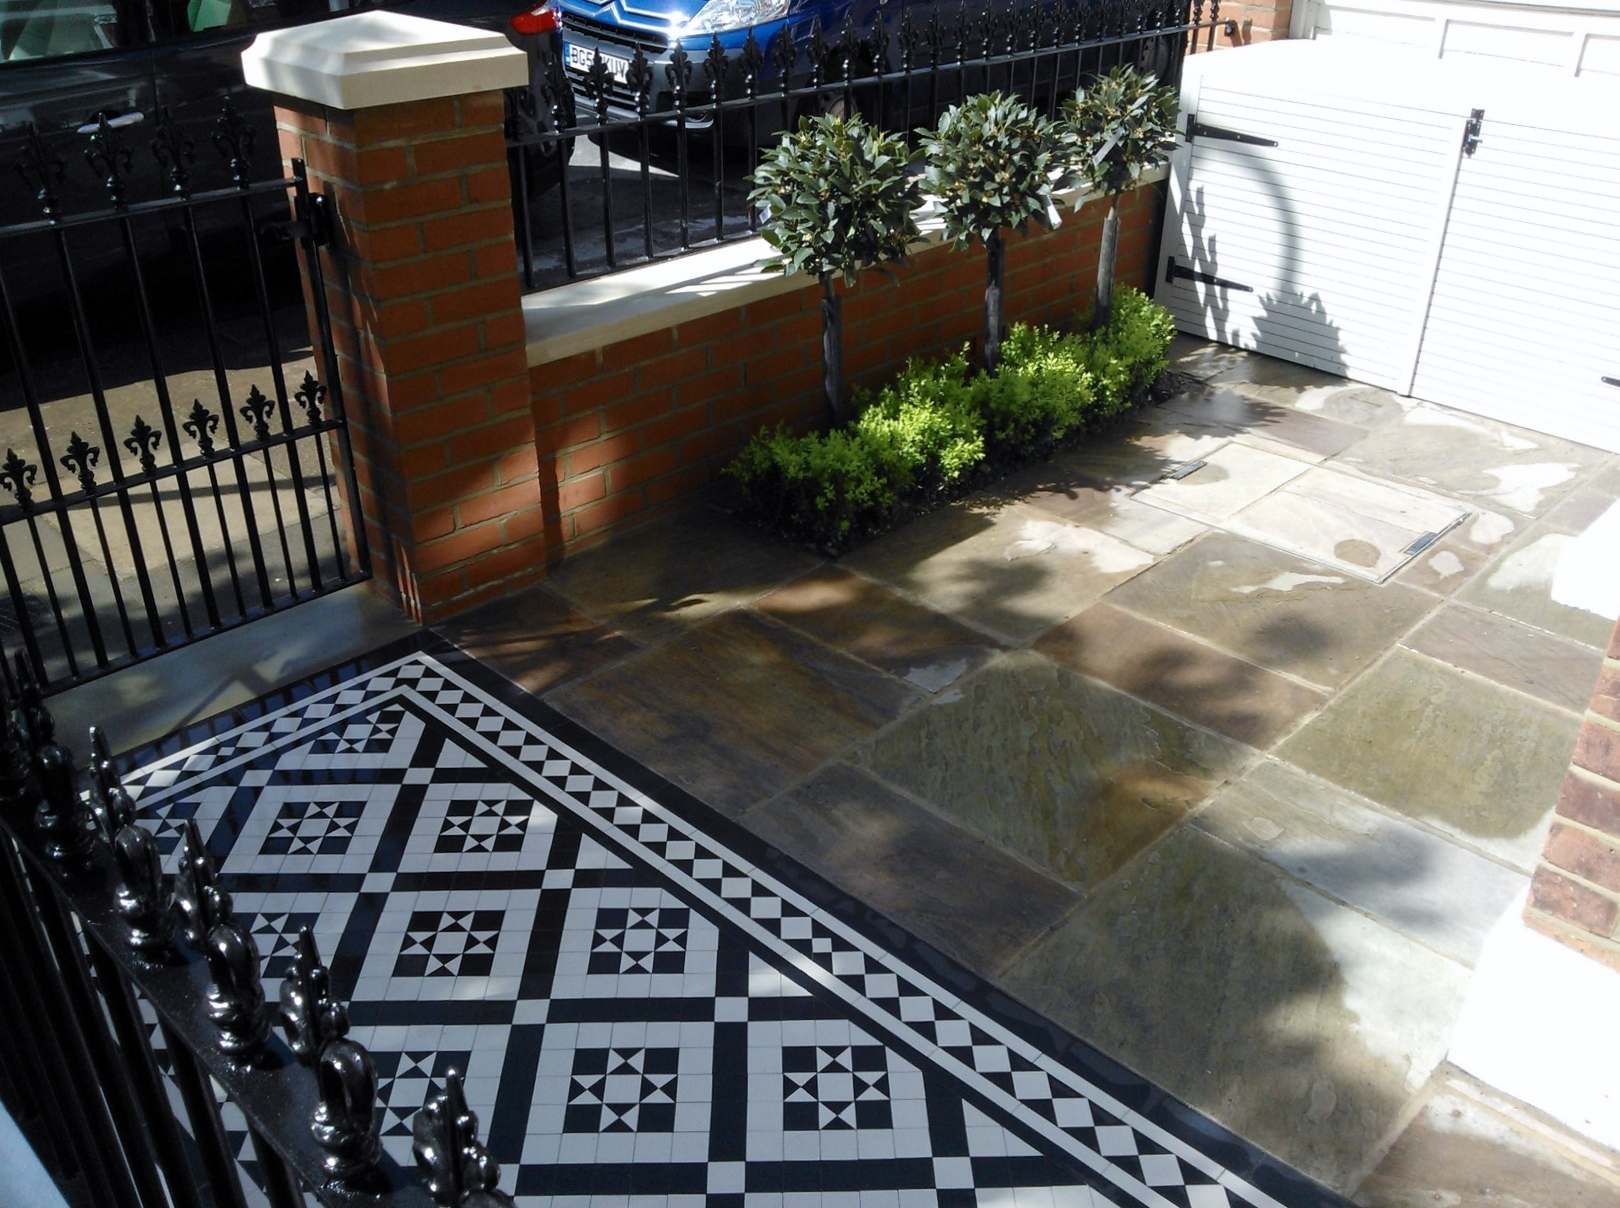 victorian mosaic tile path sandstone paving red brick wall with yorkstone cap bin store and formal planting west london (1)